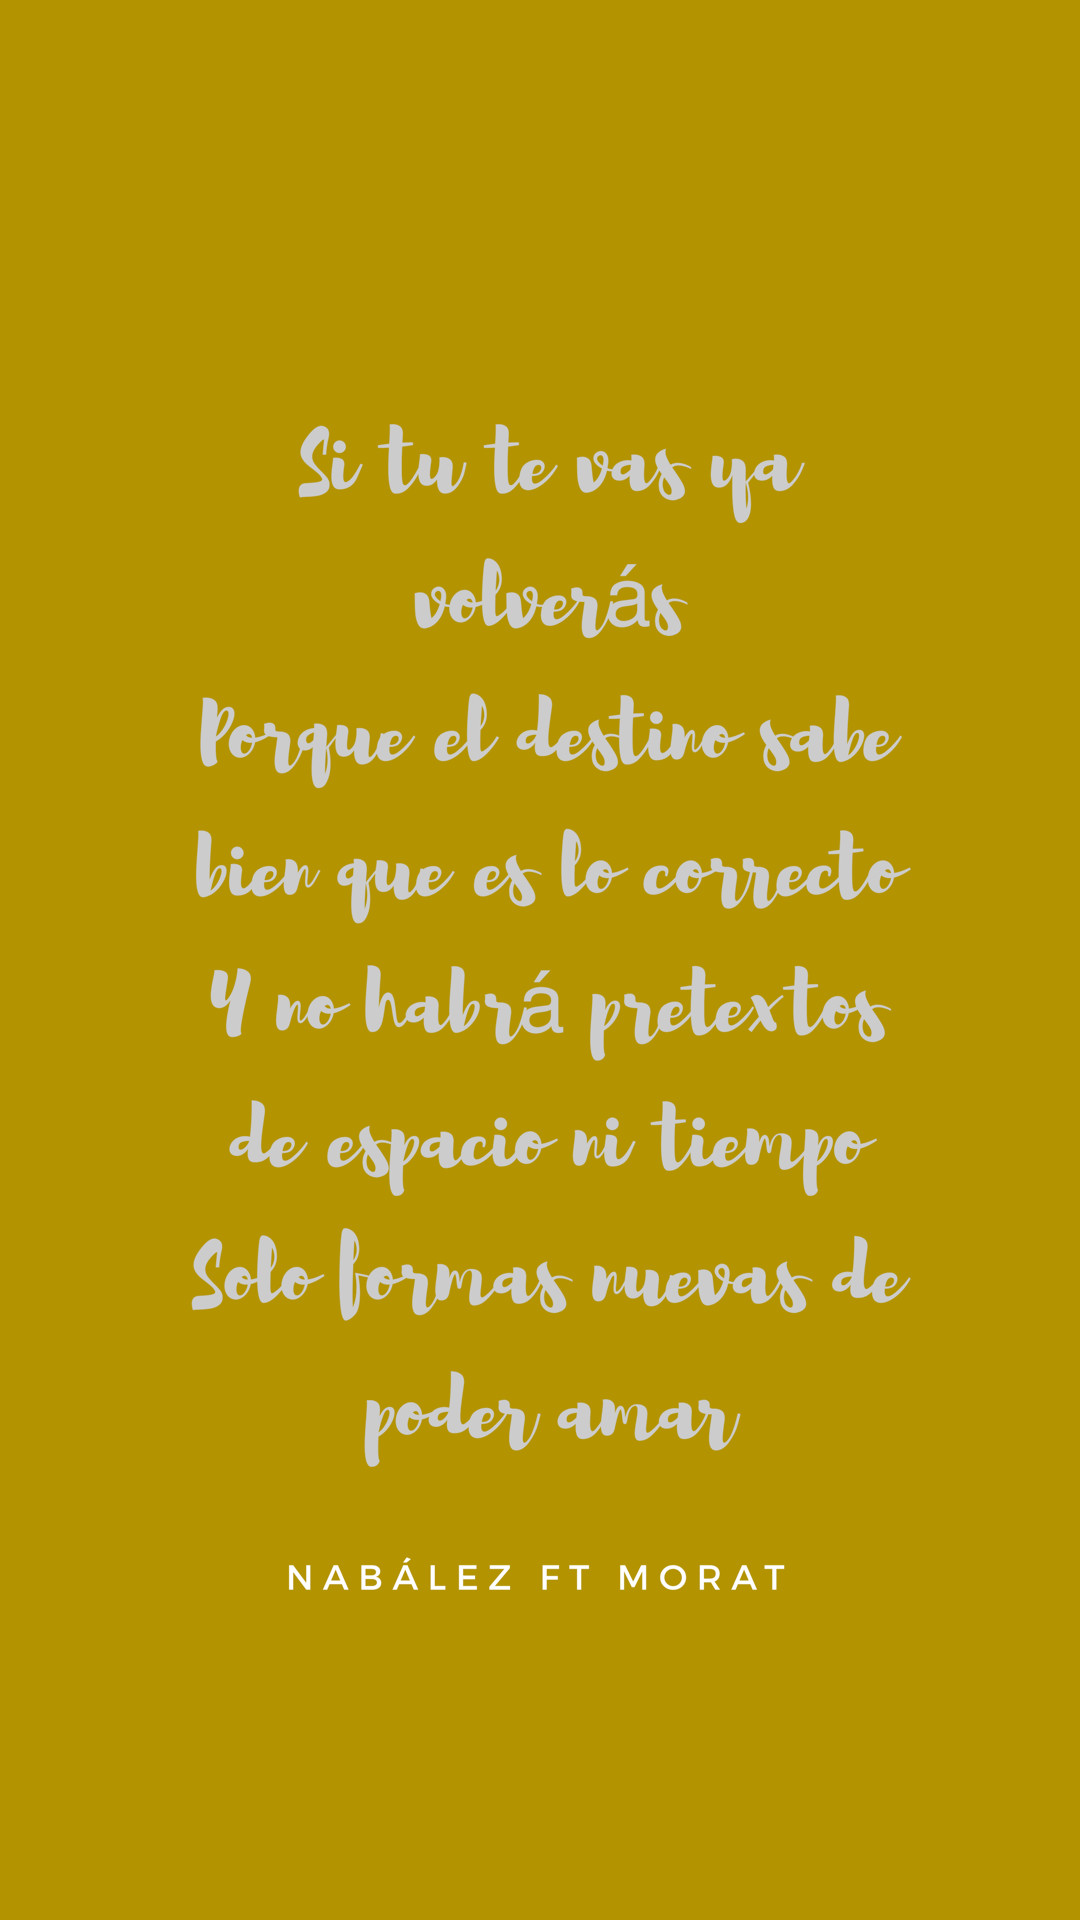 Spanish Wallpapers Sayings (68+ images)